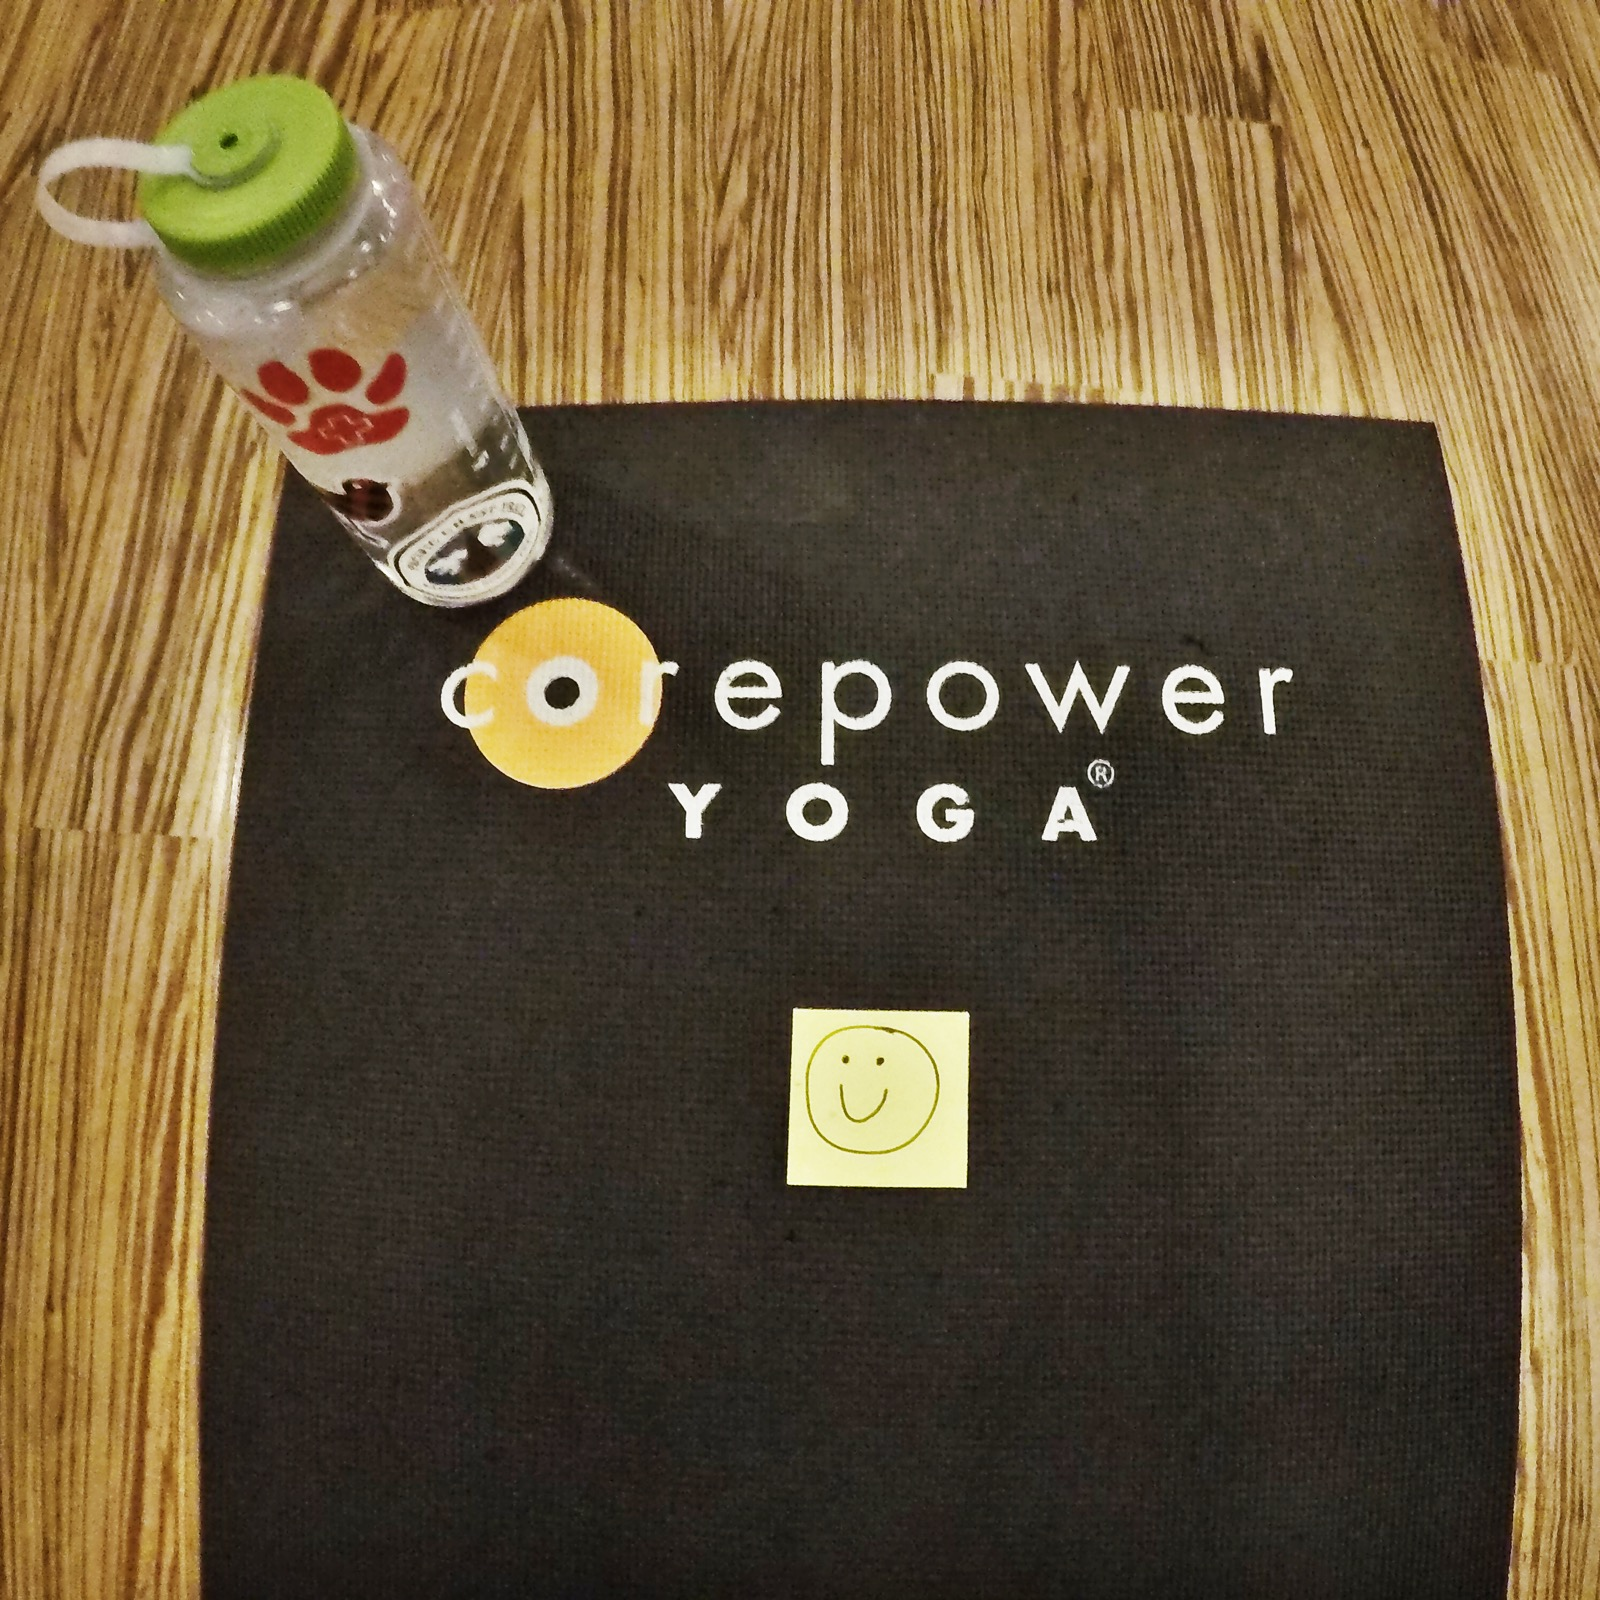 3 Things You Should Bring With You To Every Yoga Class